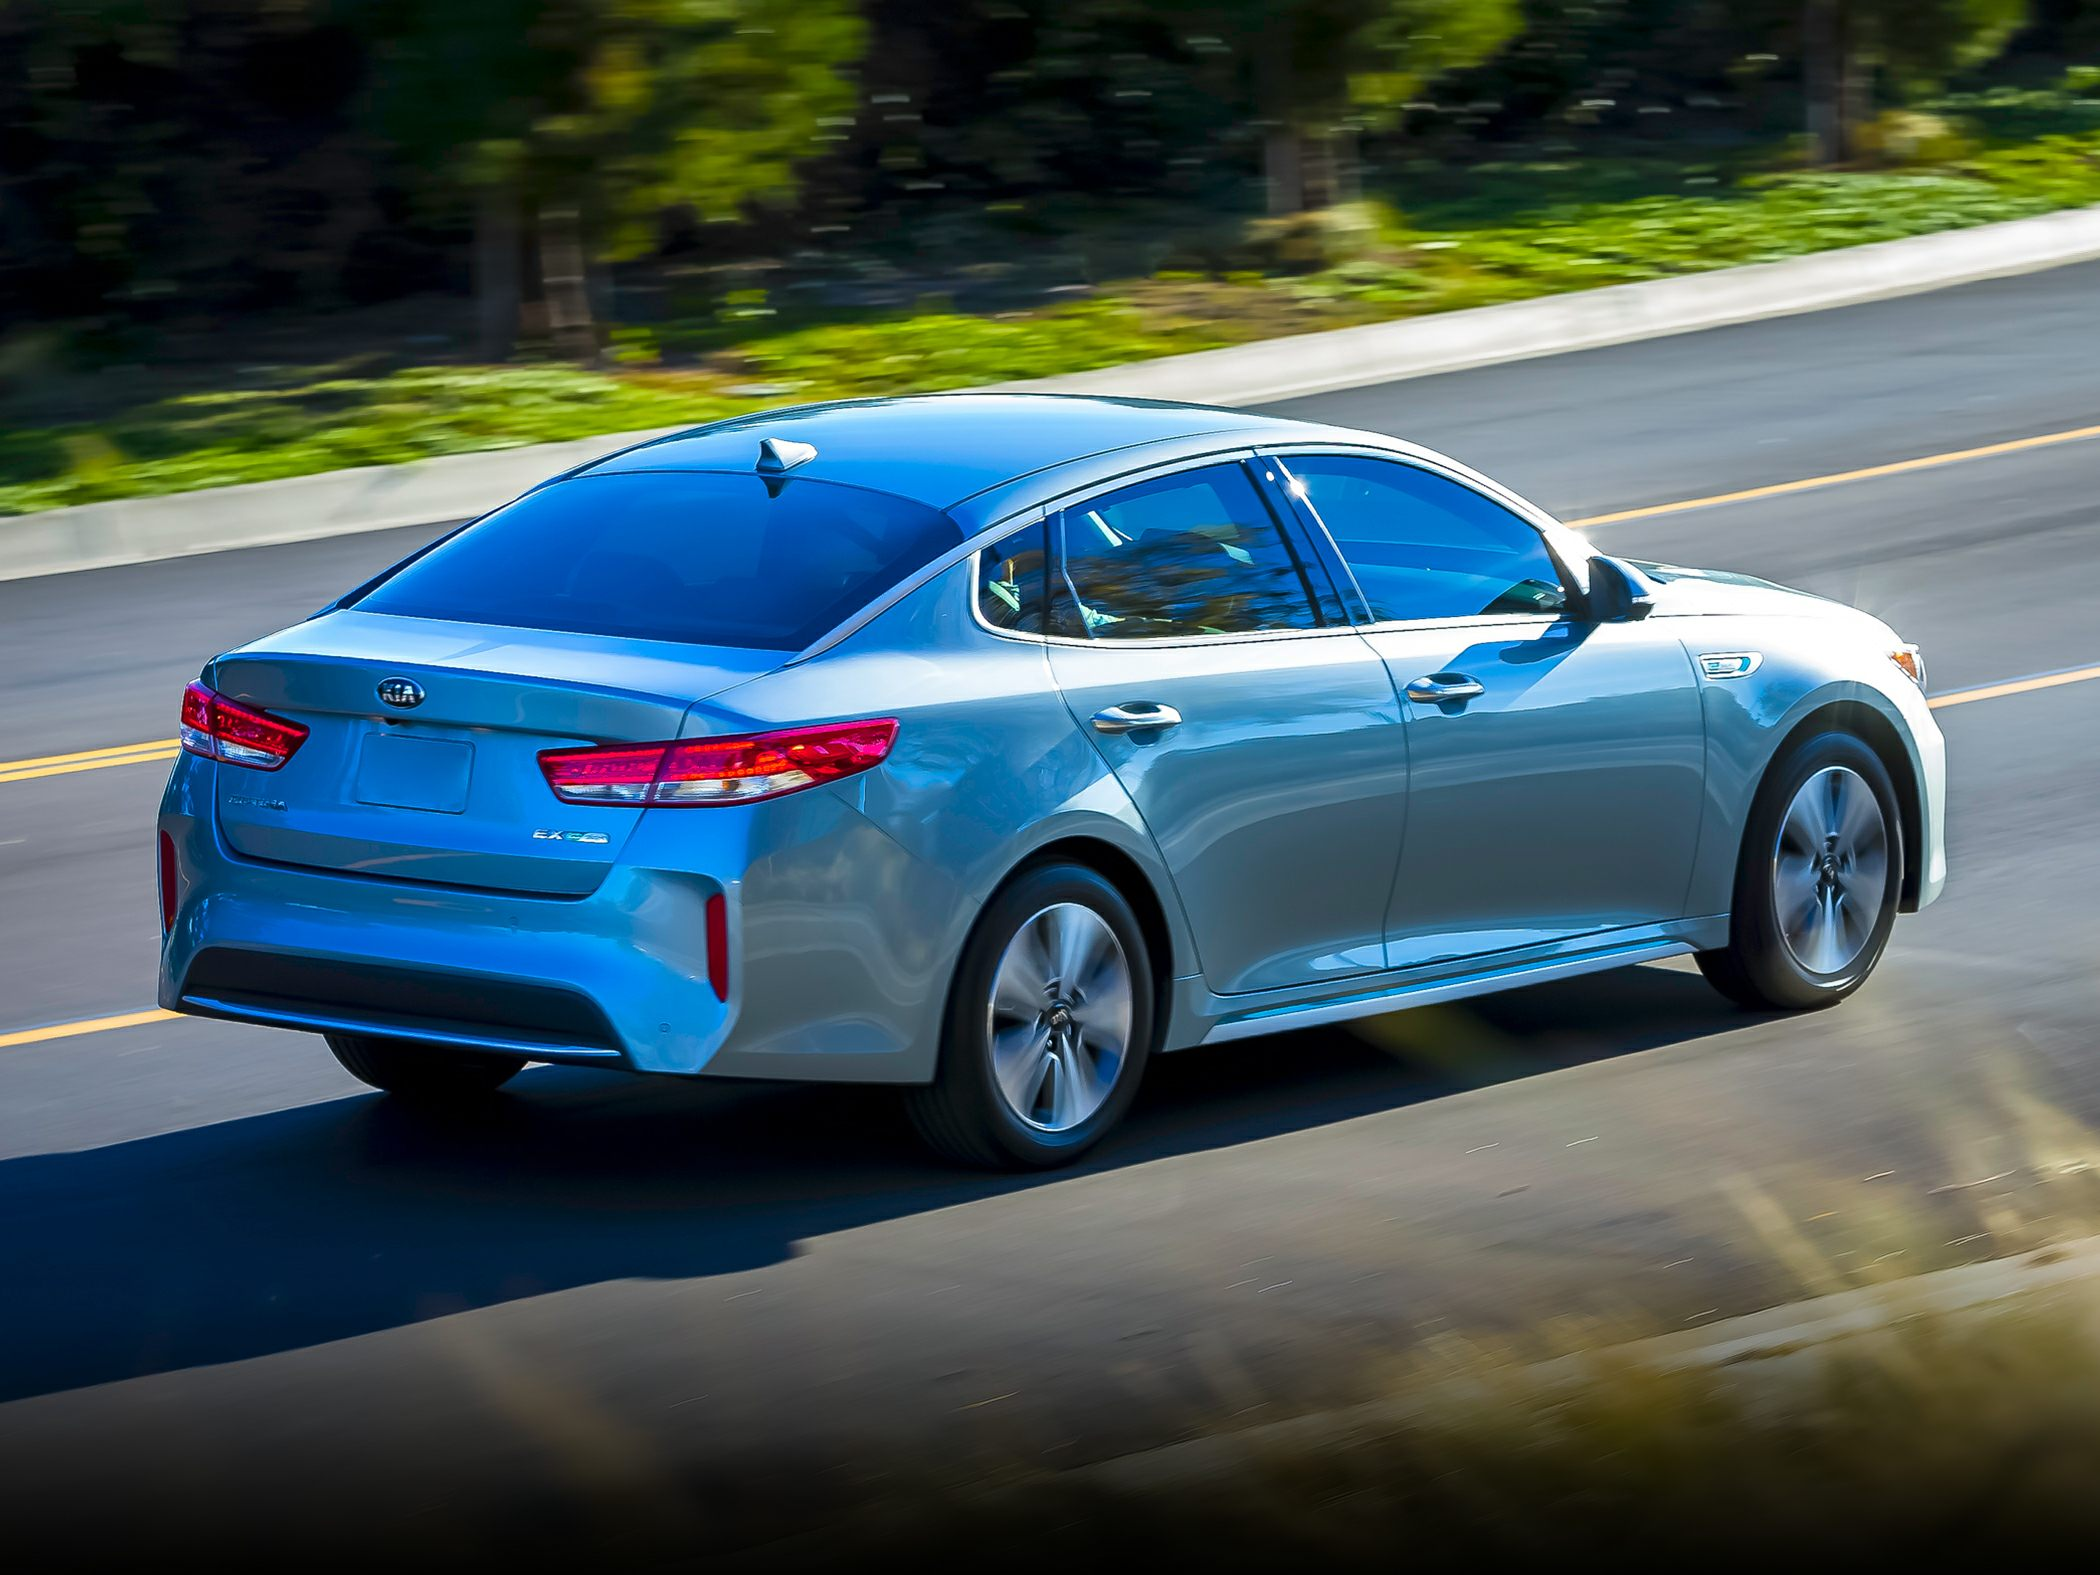 2017 kia optima plug in hybrid deals prices incentives leases overview carsdirect. Black Bedroom Furniture Sets. Home Design Ideas